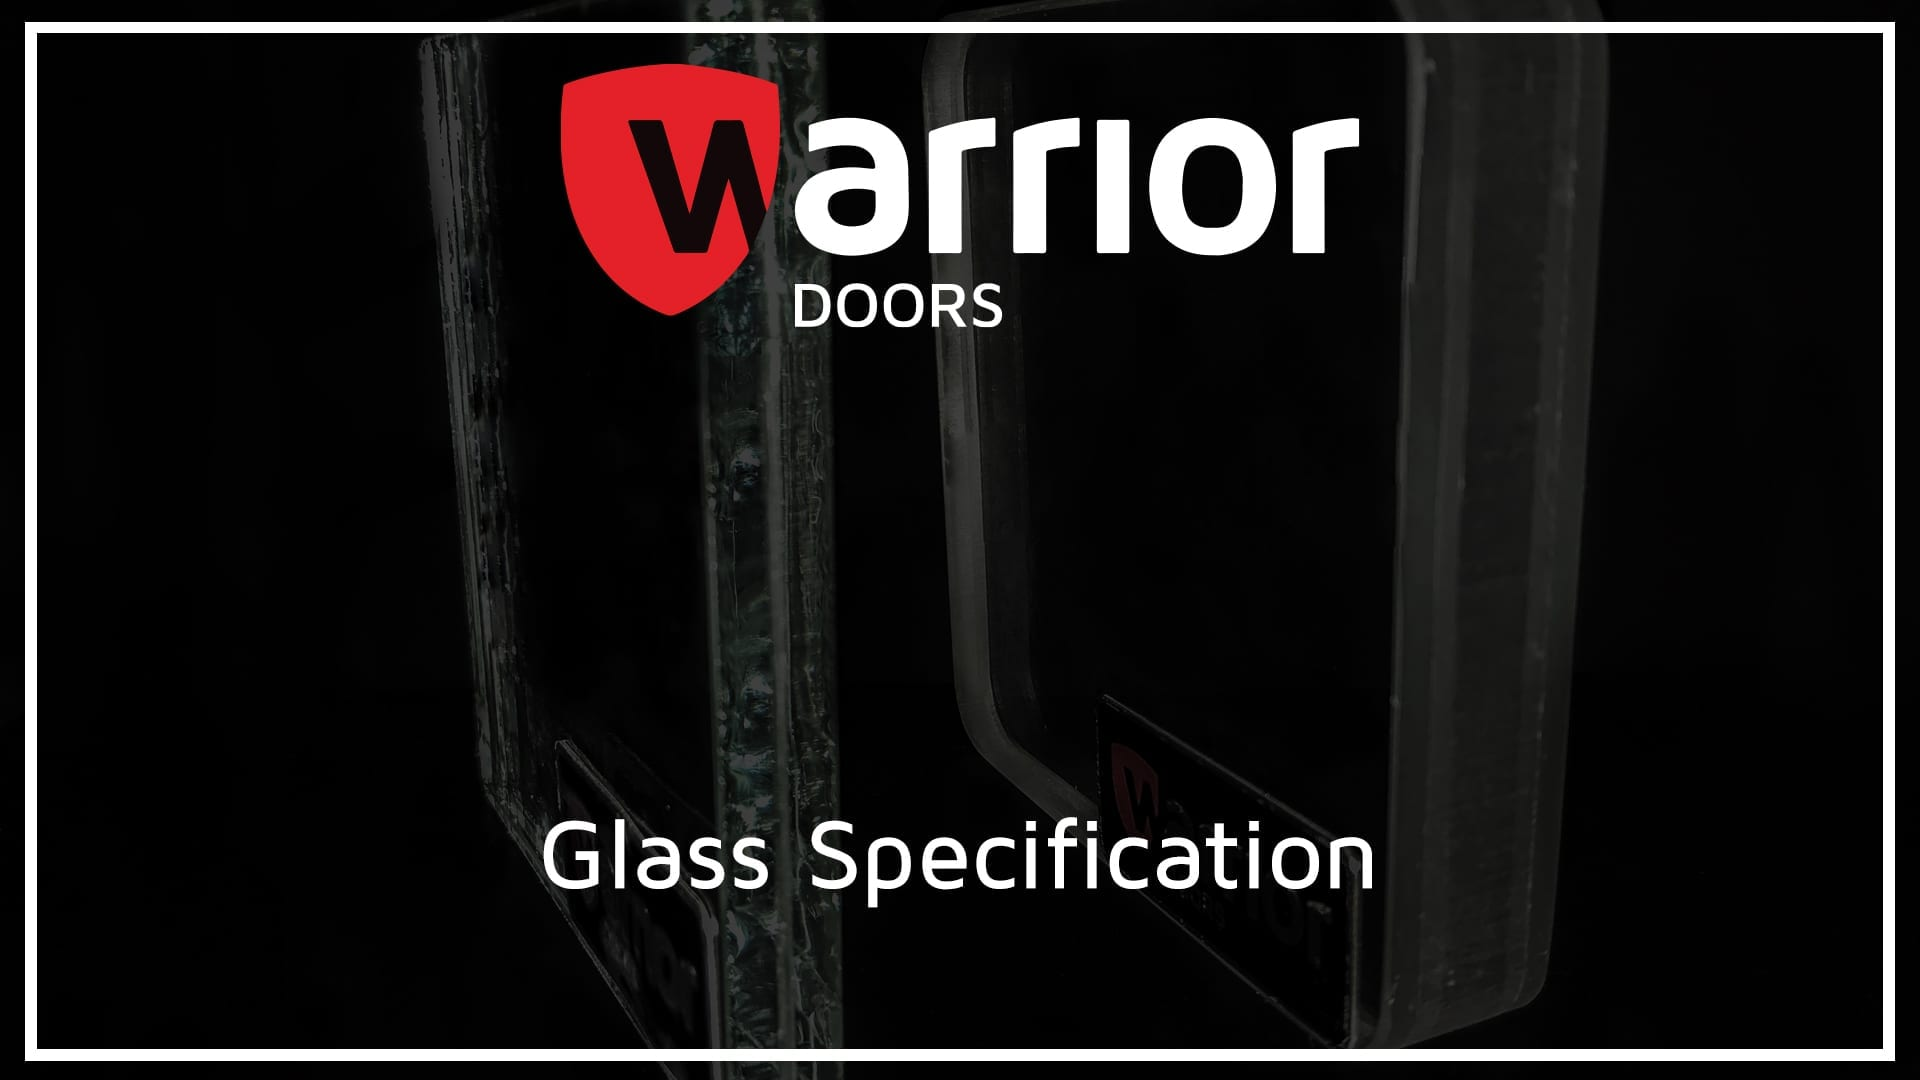 """A sample of Anti-Bandit Glass and a smaple of LPS 1270 Glass with Warrior Doors logo and text reading """"Glass Specification""""."""